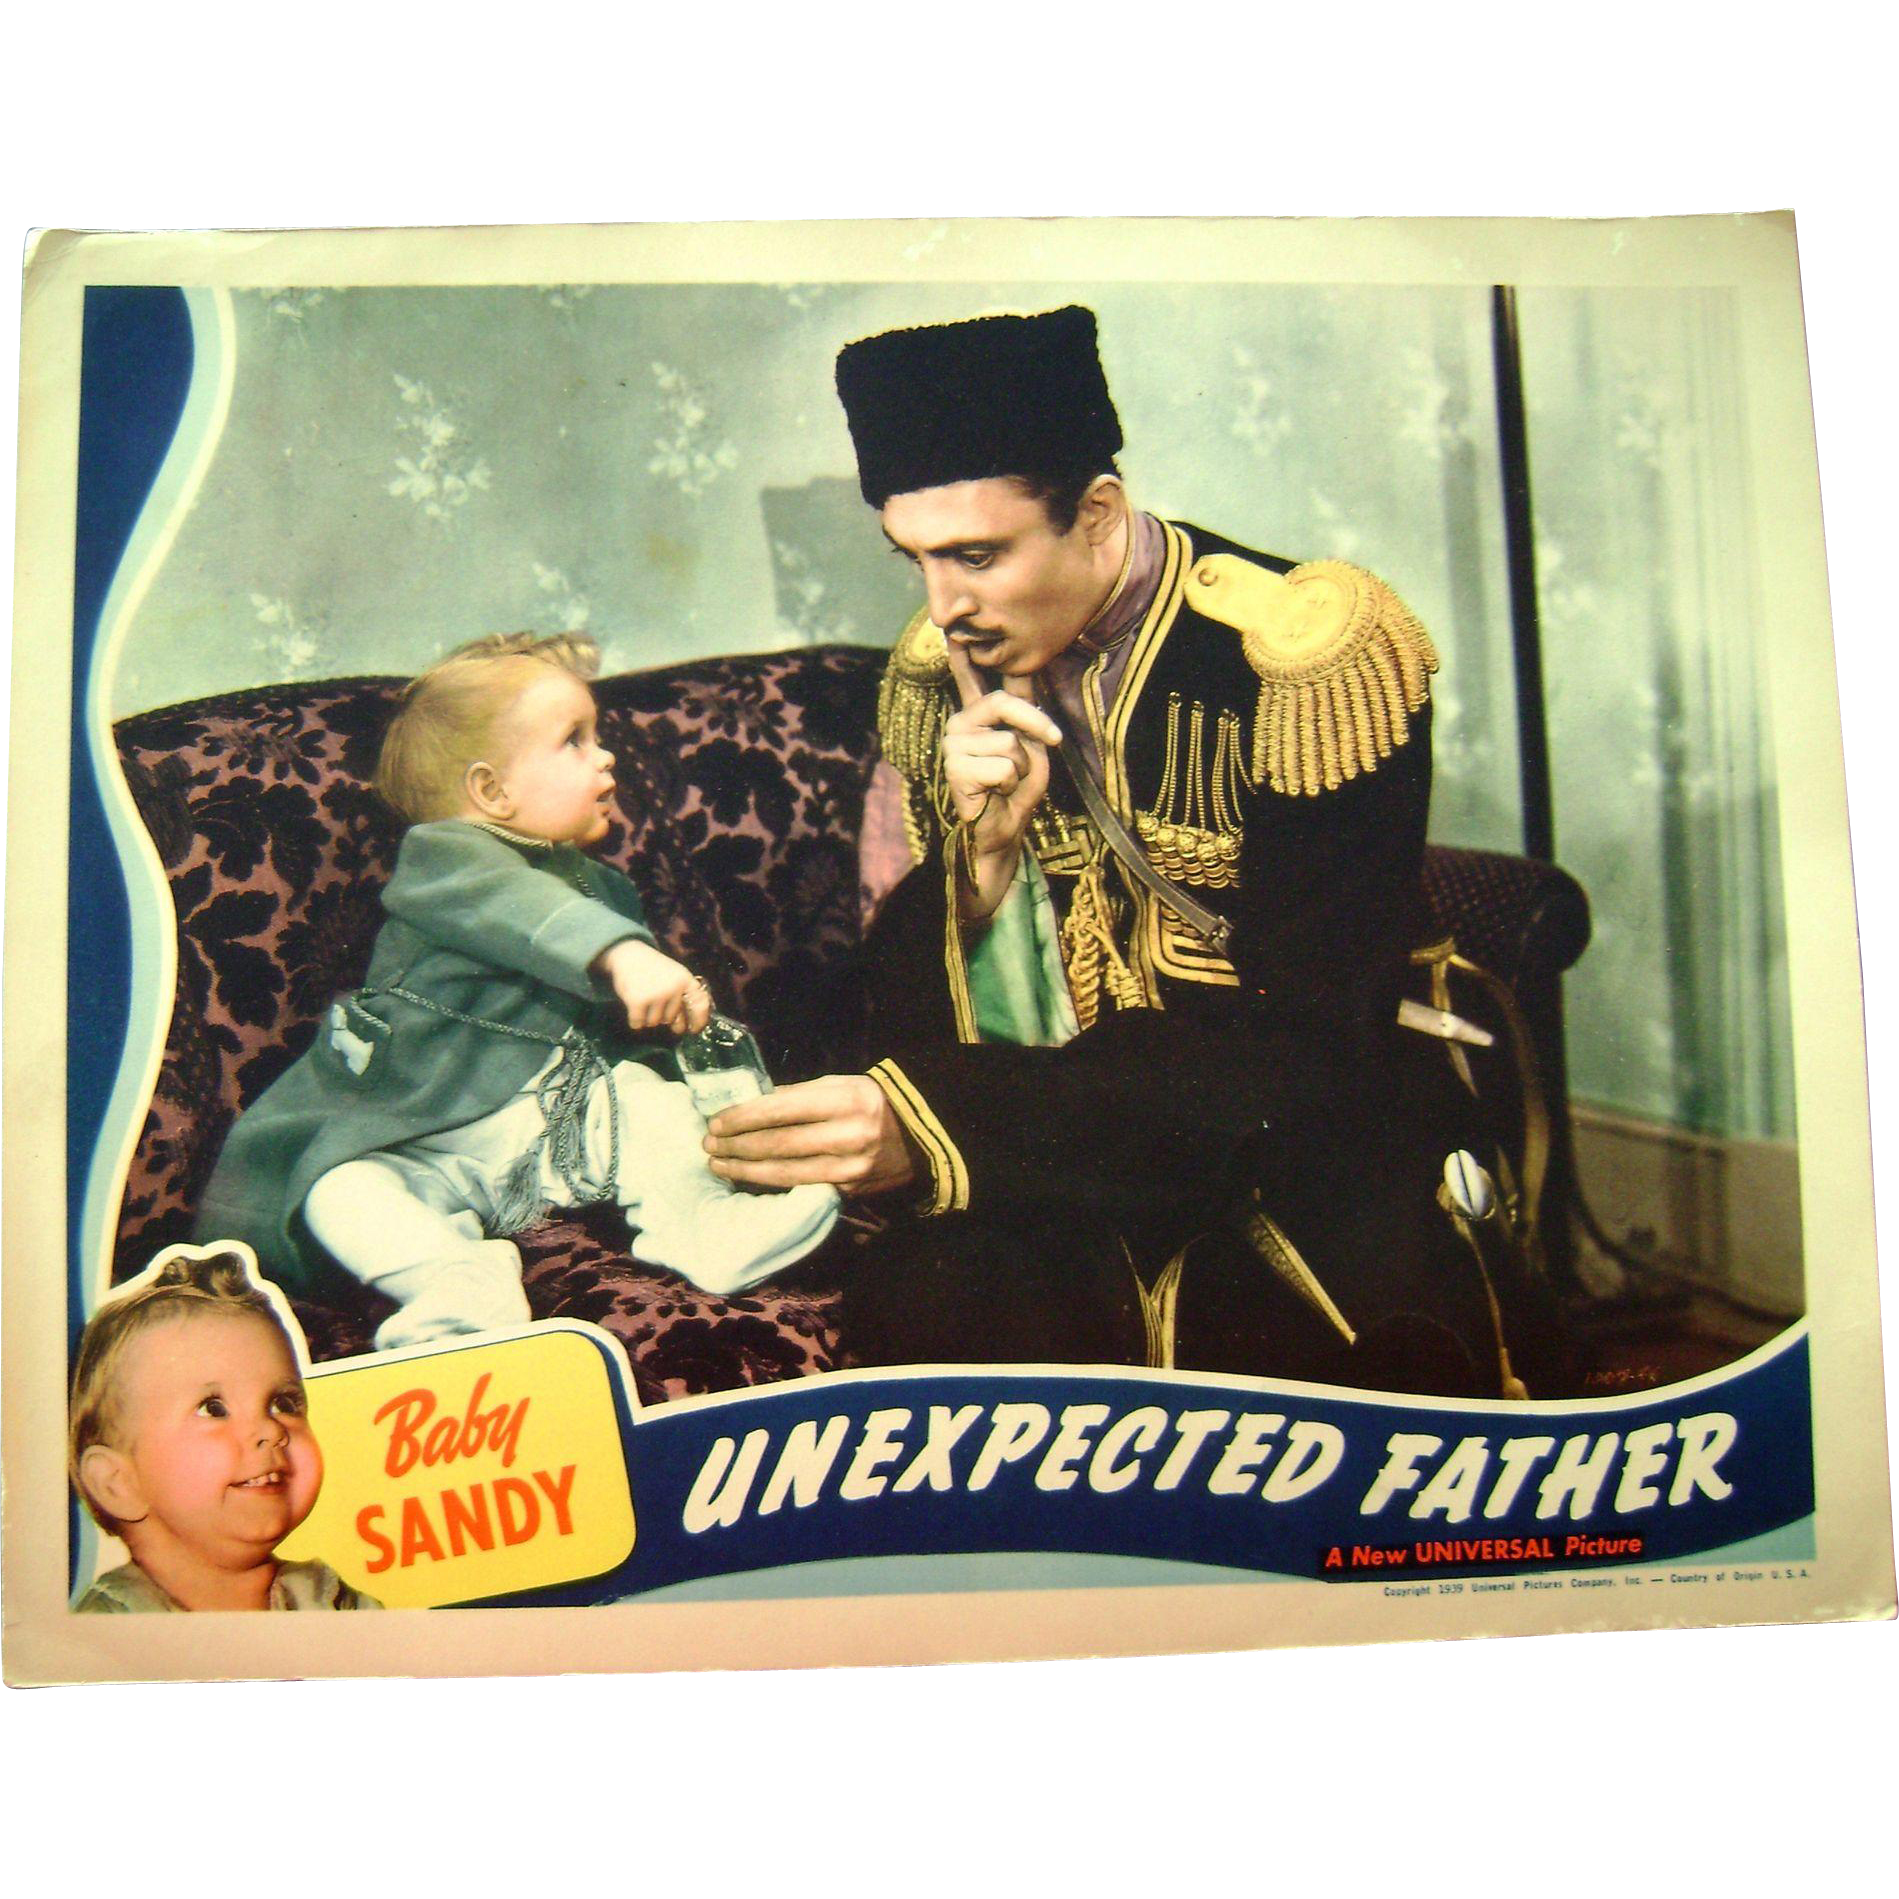 Vintage 1939 Baby Sandy Movie Theater Lobby Card Unexpected Father Mischa Auer